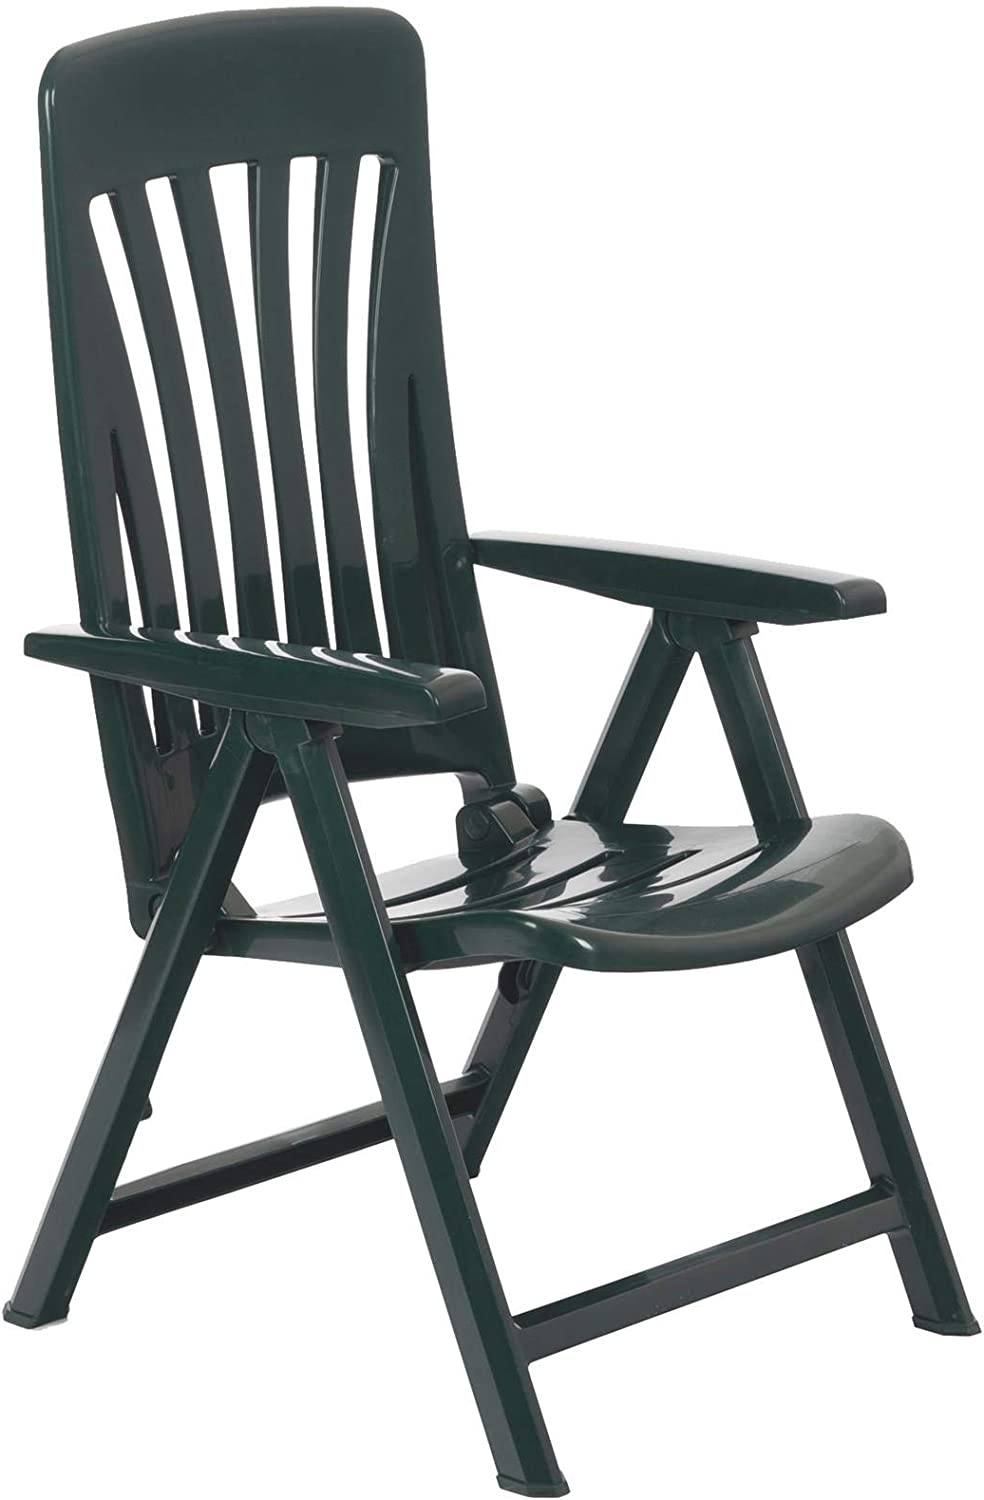 Resol Blanes Folding and Reclining Garden Chairs Set of 11, Green